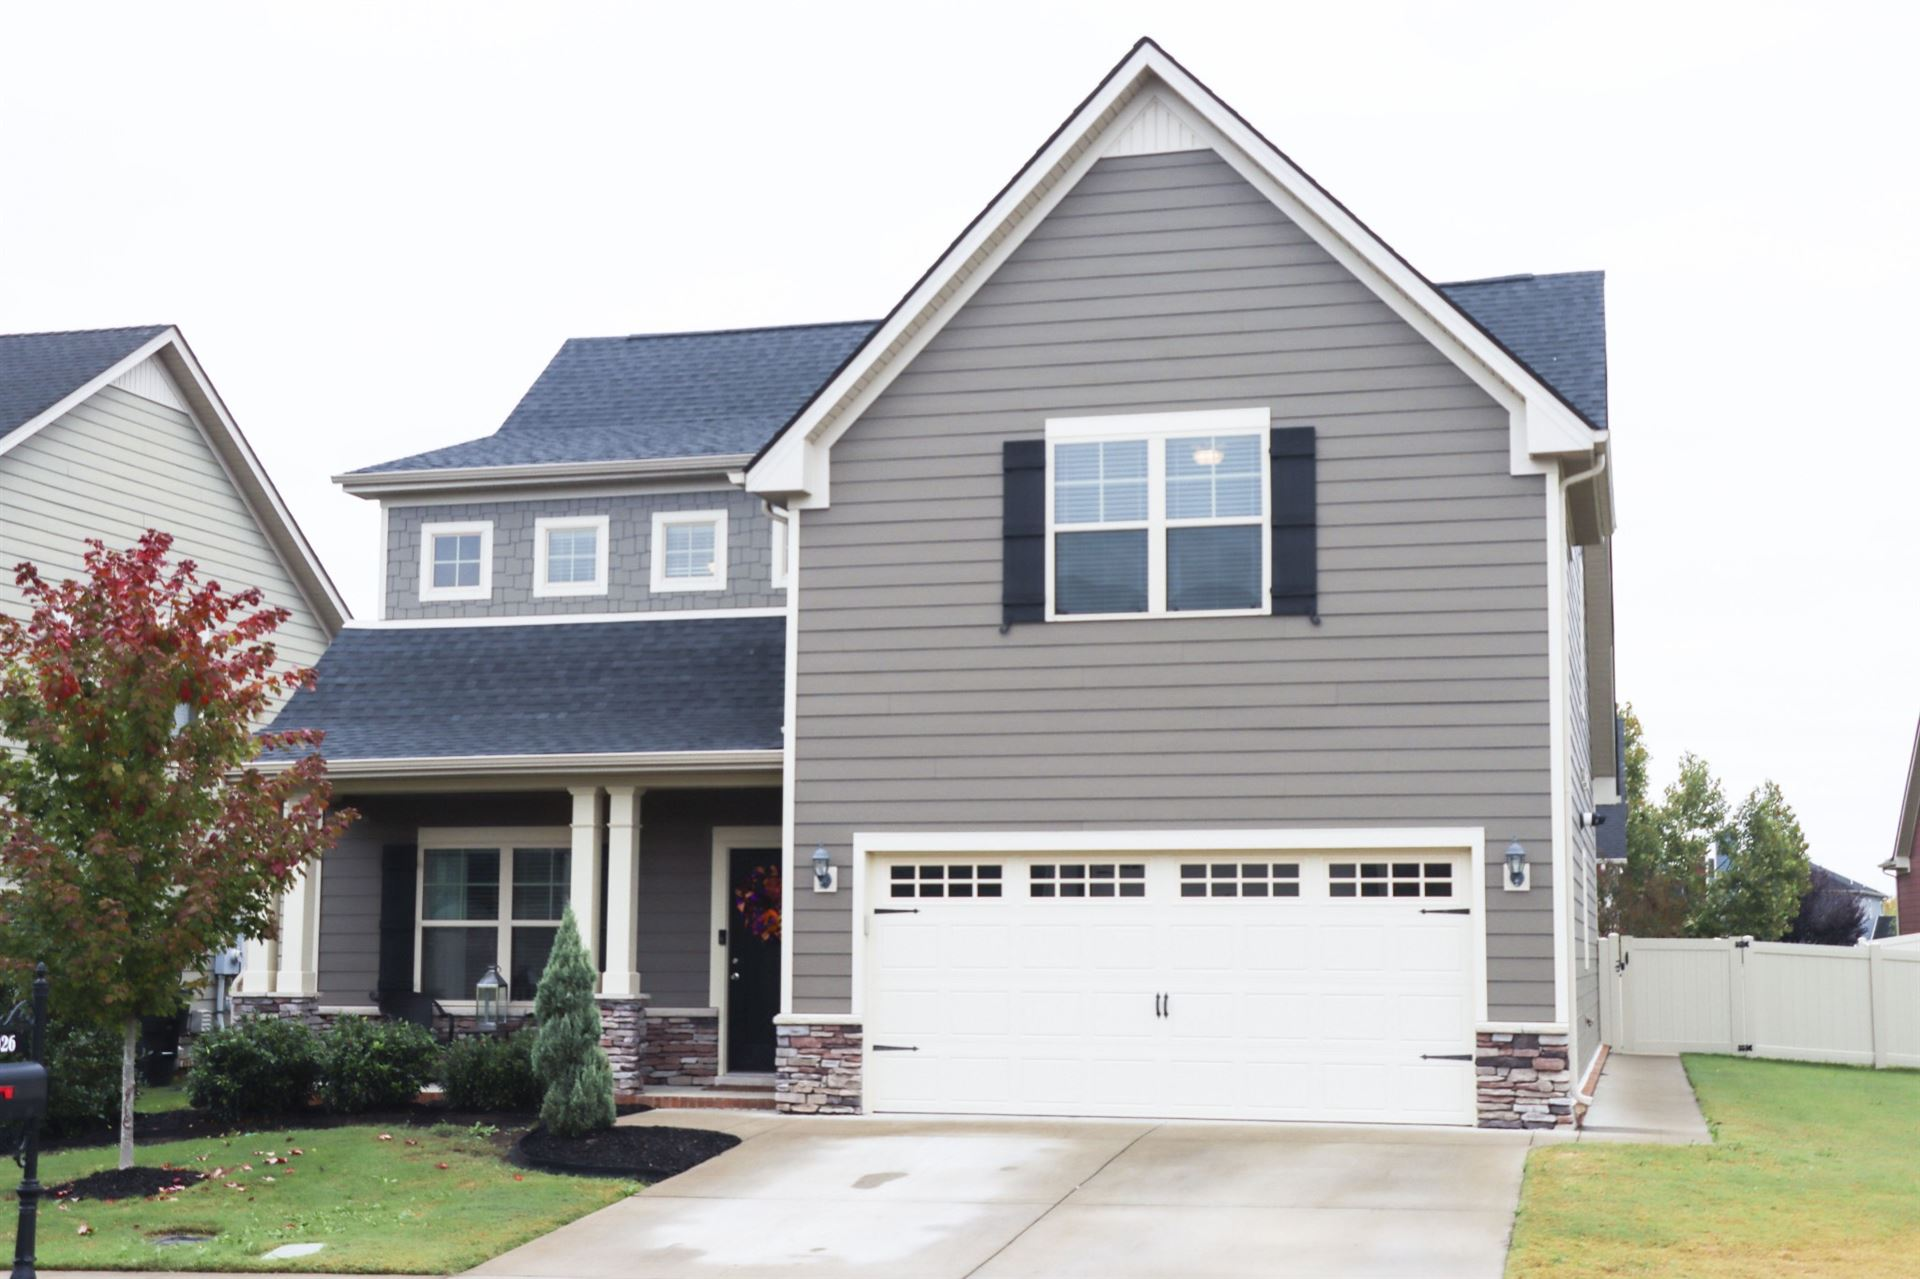 1026 Brinxton Run, Murfreesboro, TN 37128 - MLS#: 2195996